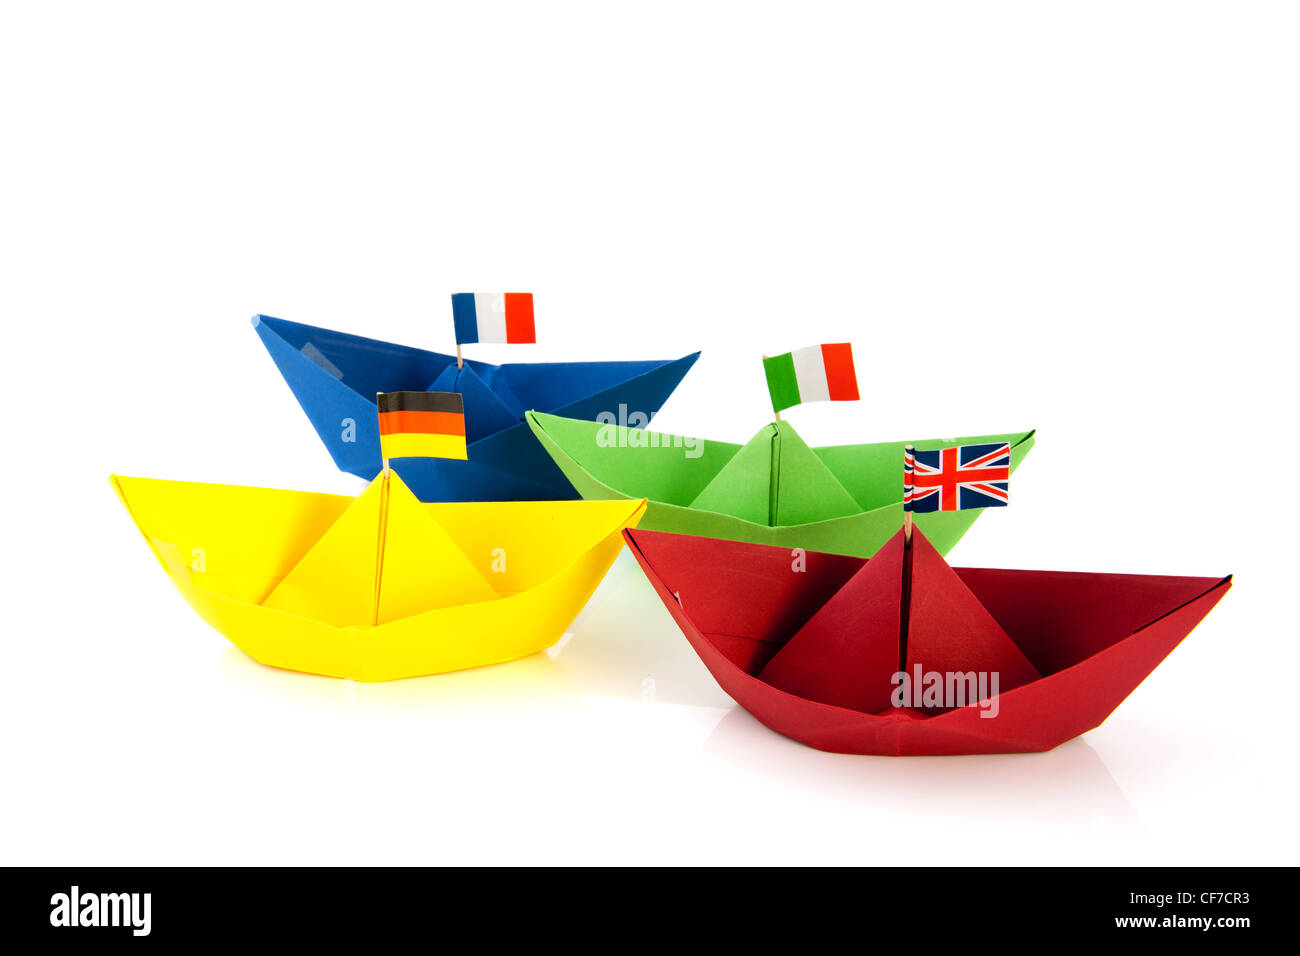 Colorful Folded Paper Boats With European Flags Isolated Over White